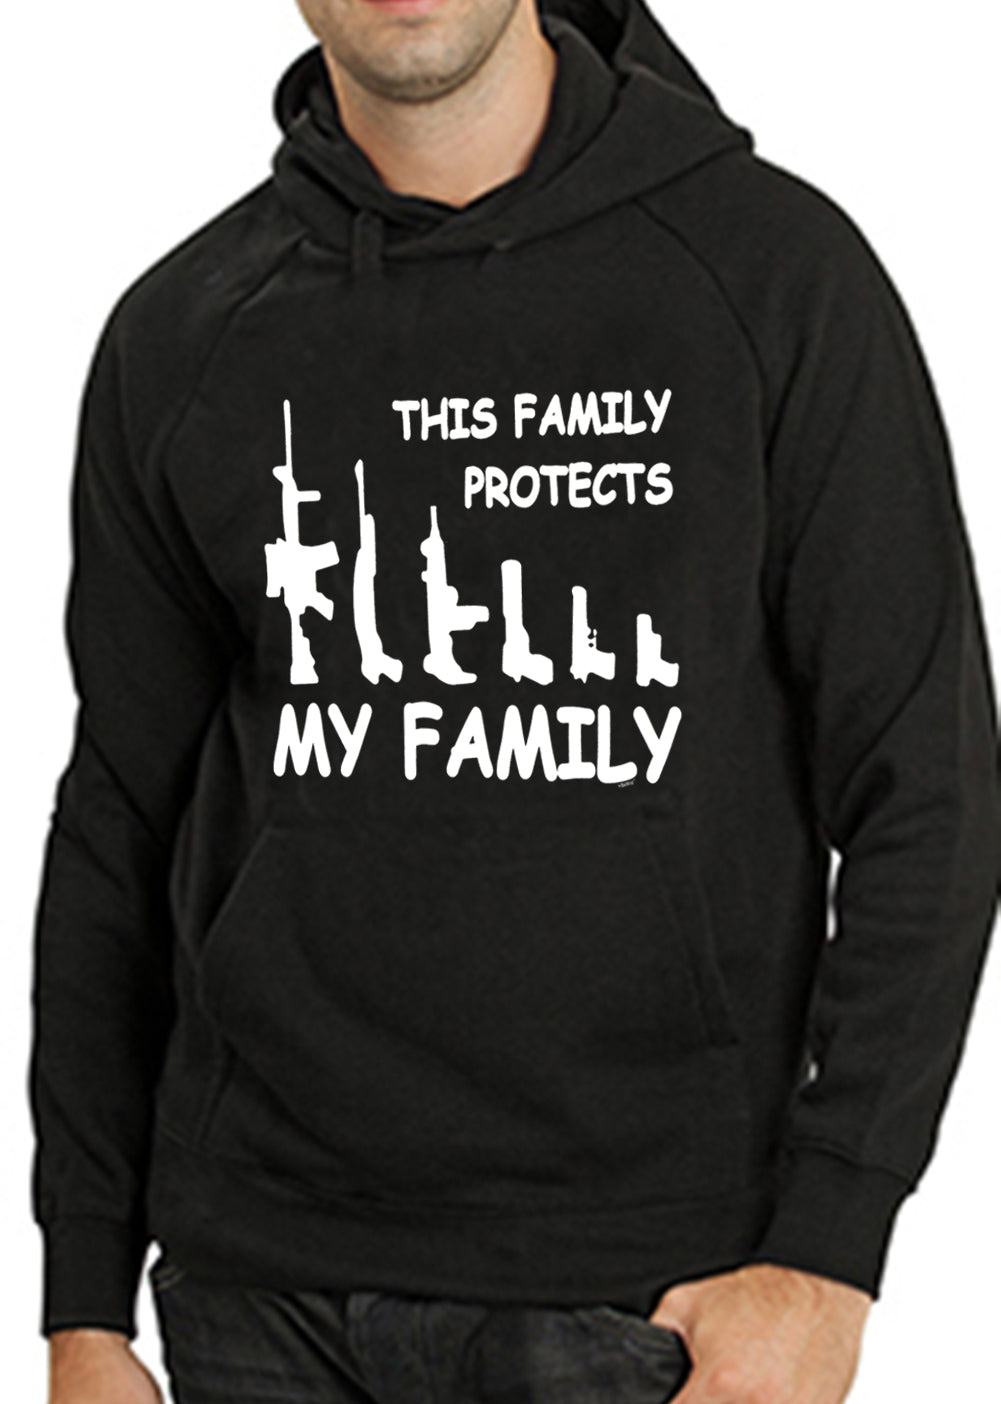 This Family Protects My Family Adult Hoodie